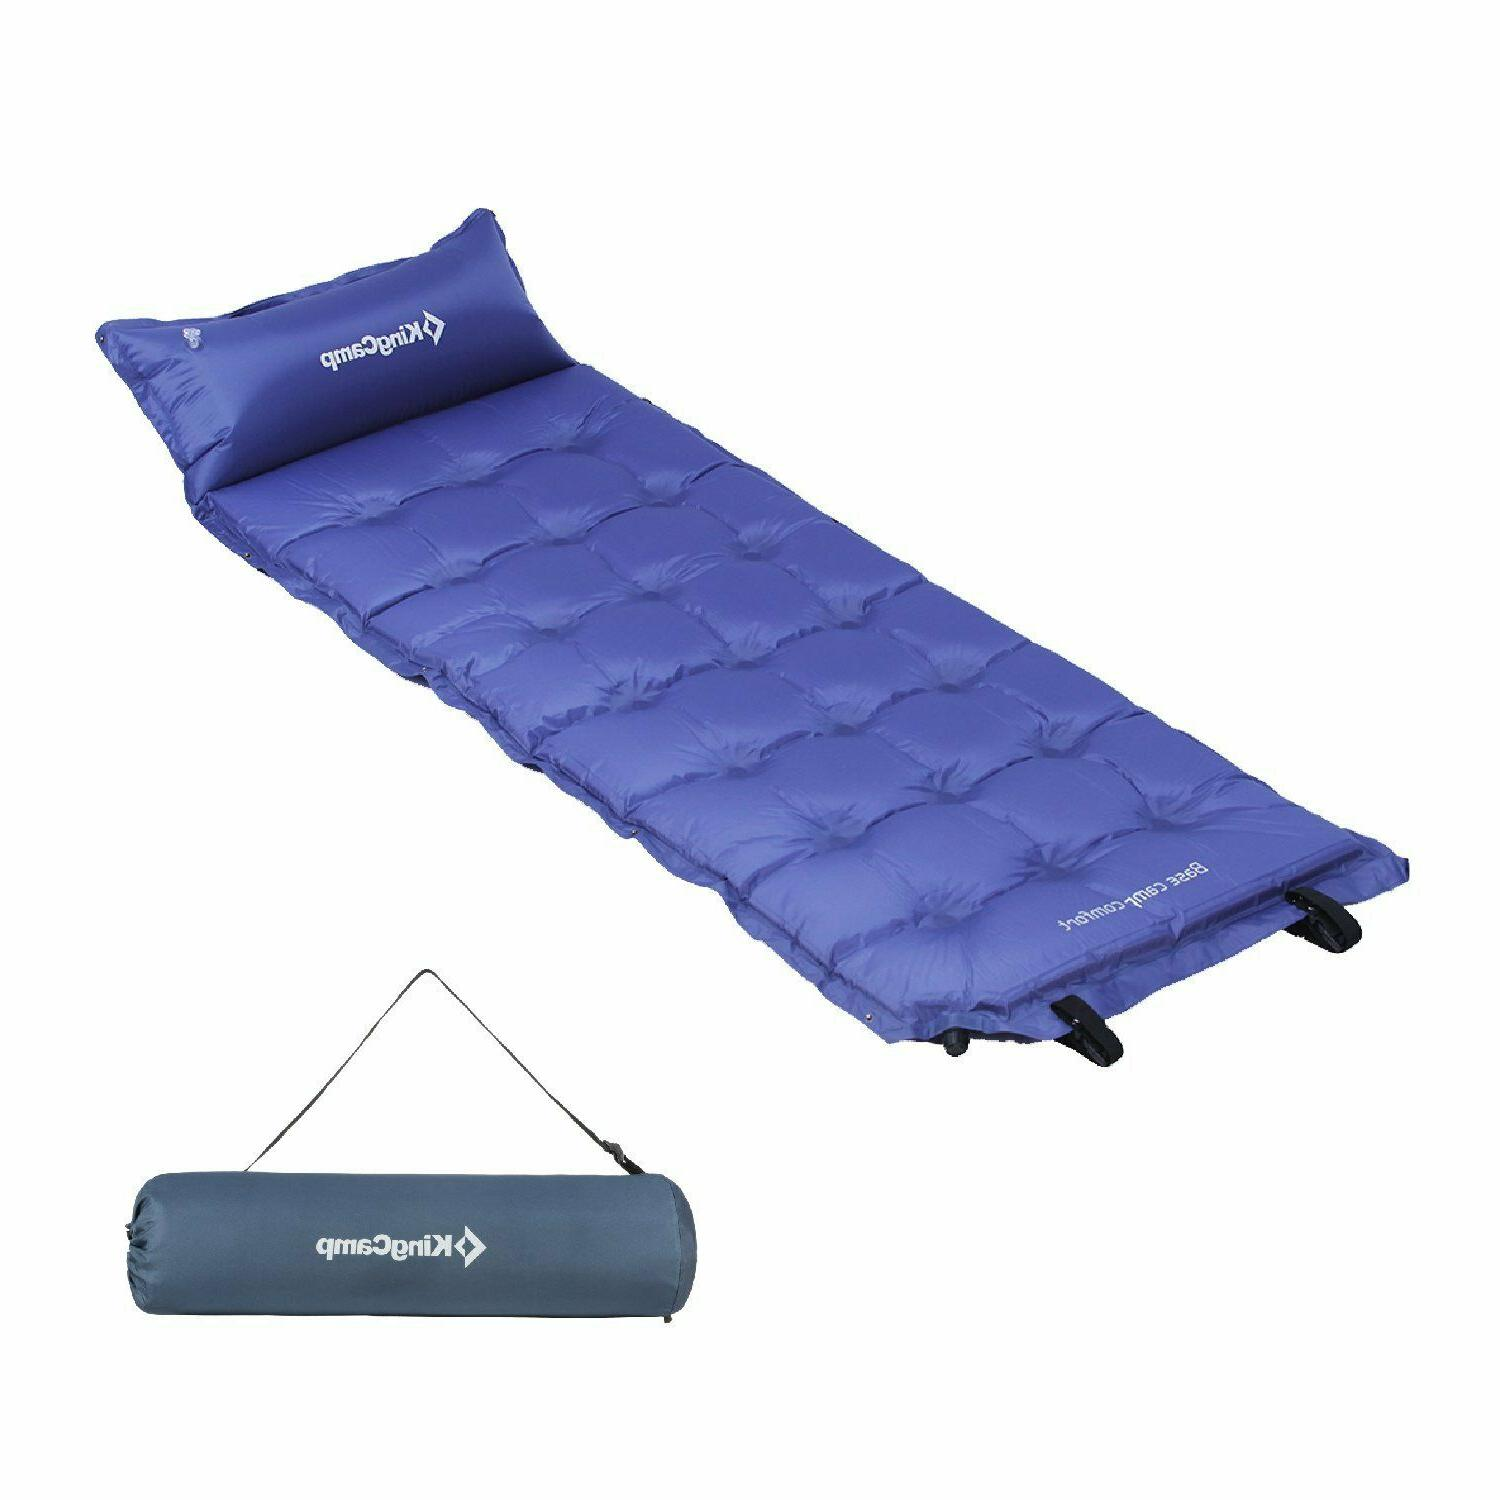 CAMPING Portable Outdoor Mat Gears Sleeping